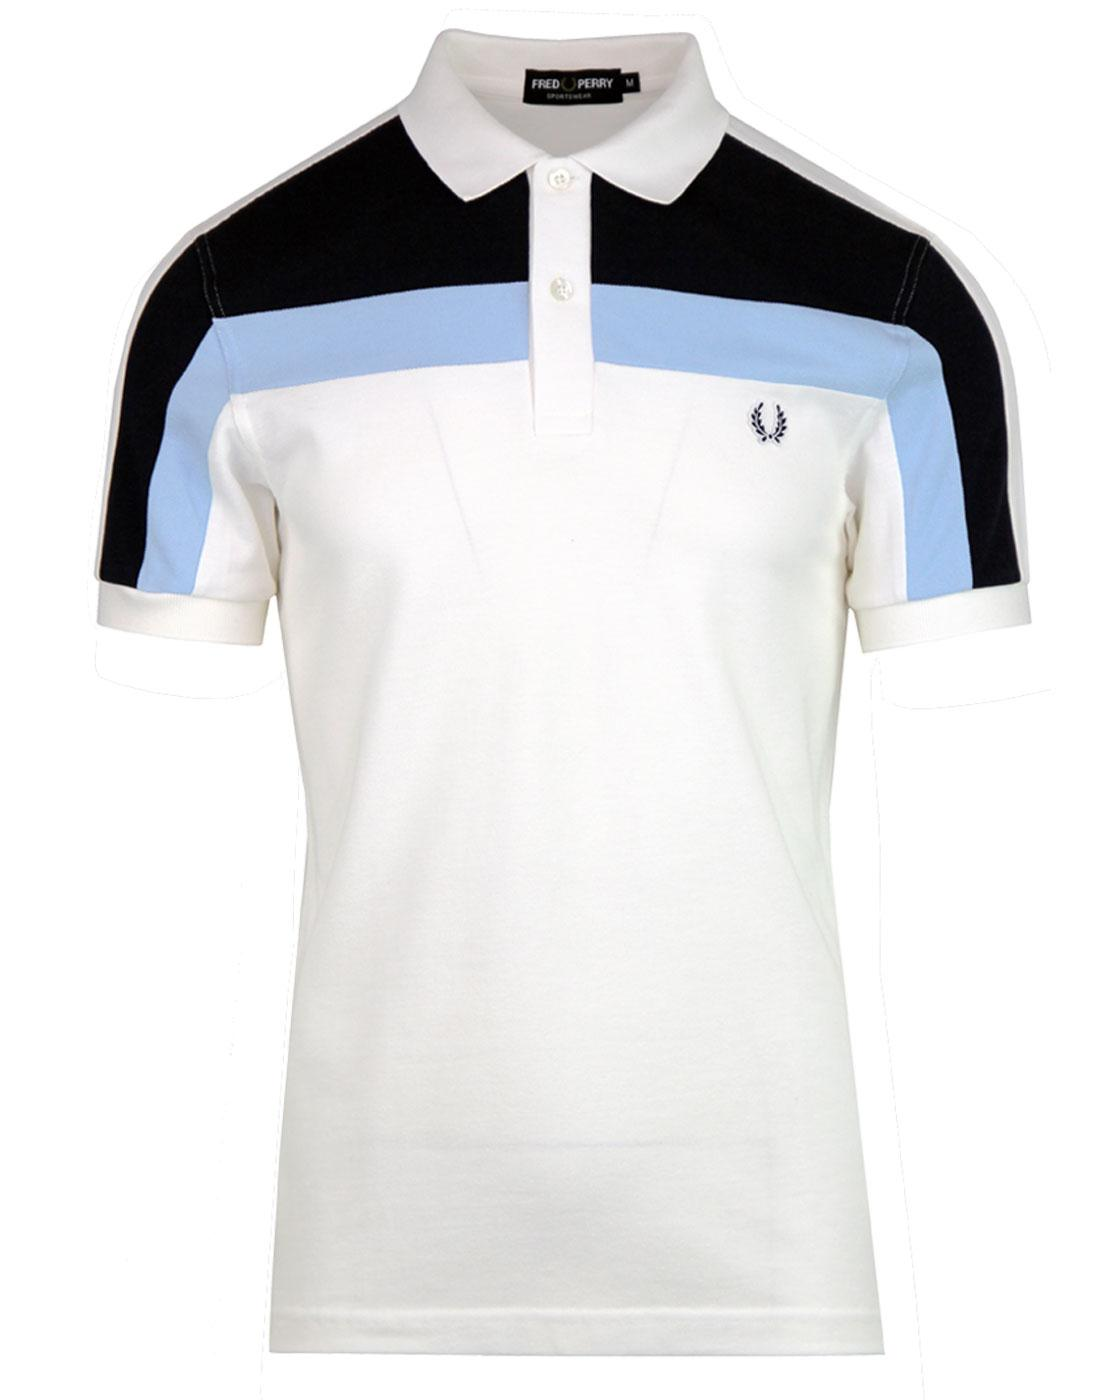 M2603 Fred Perry Block Panel Pique Snow White